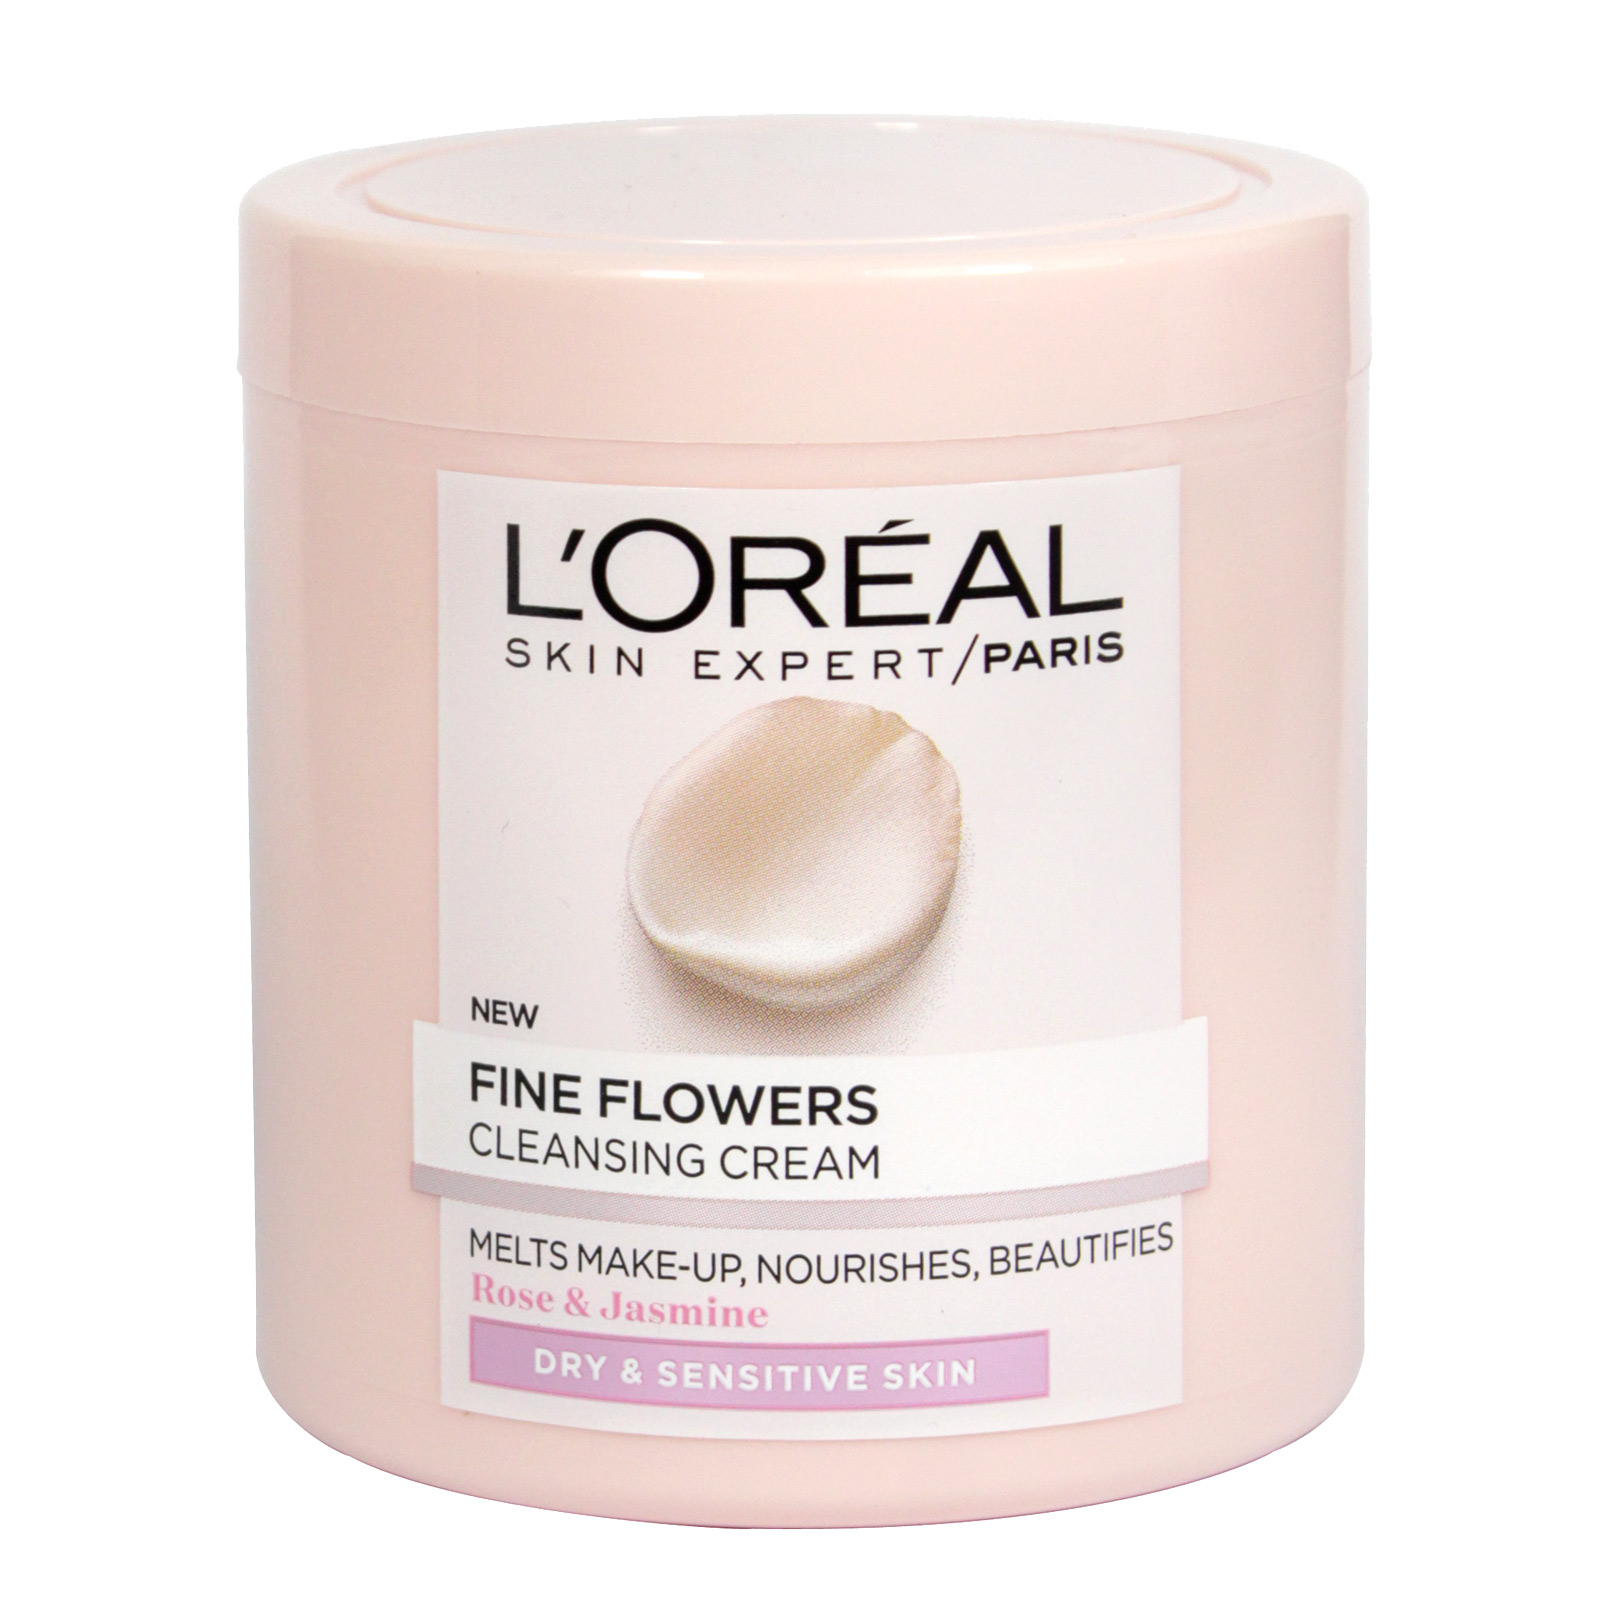 LOREAL FINE FLOWERS CLEANSING CREAM